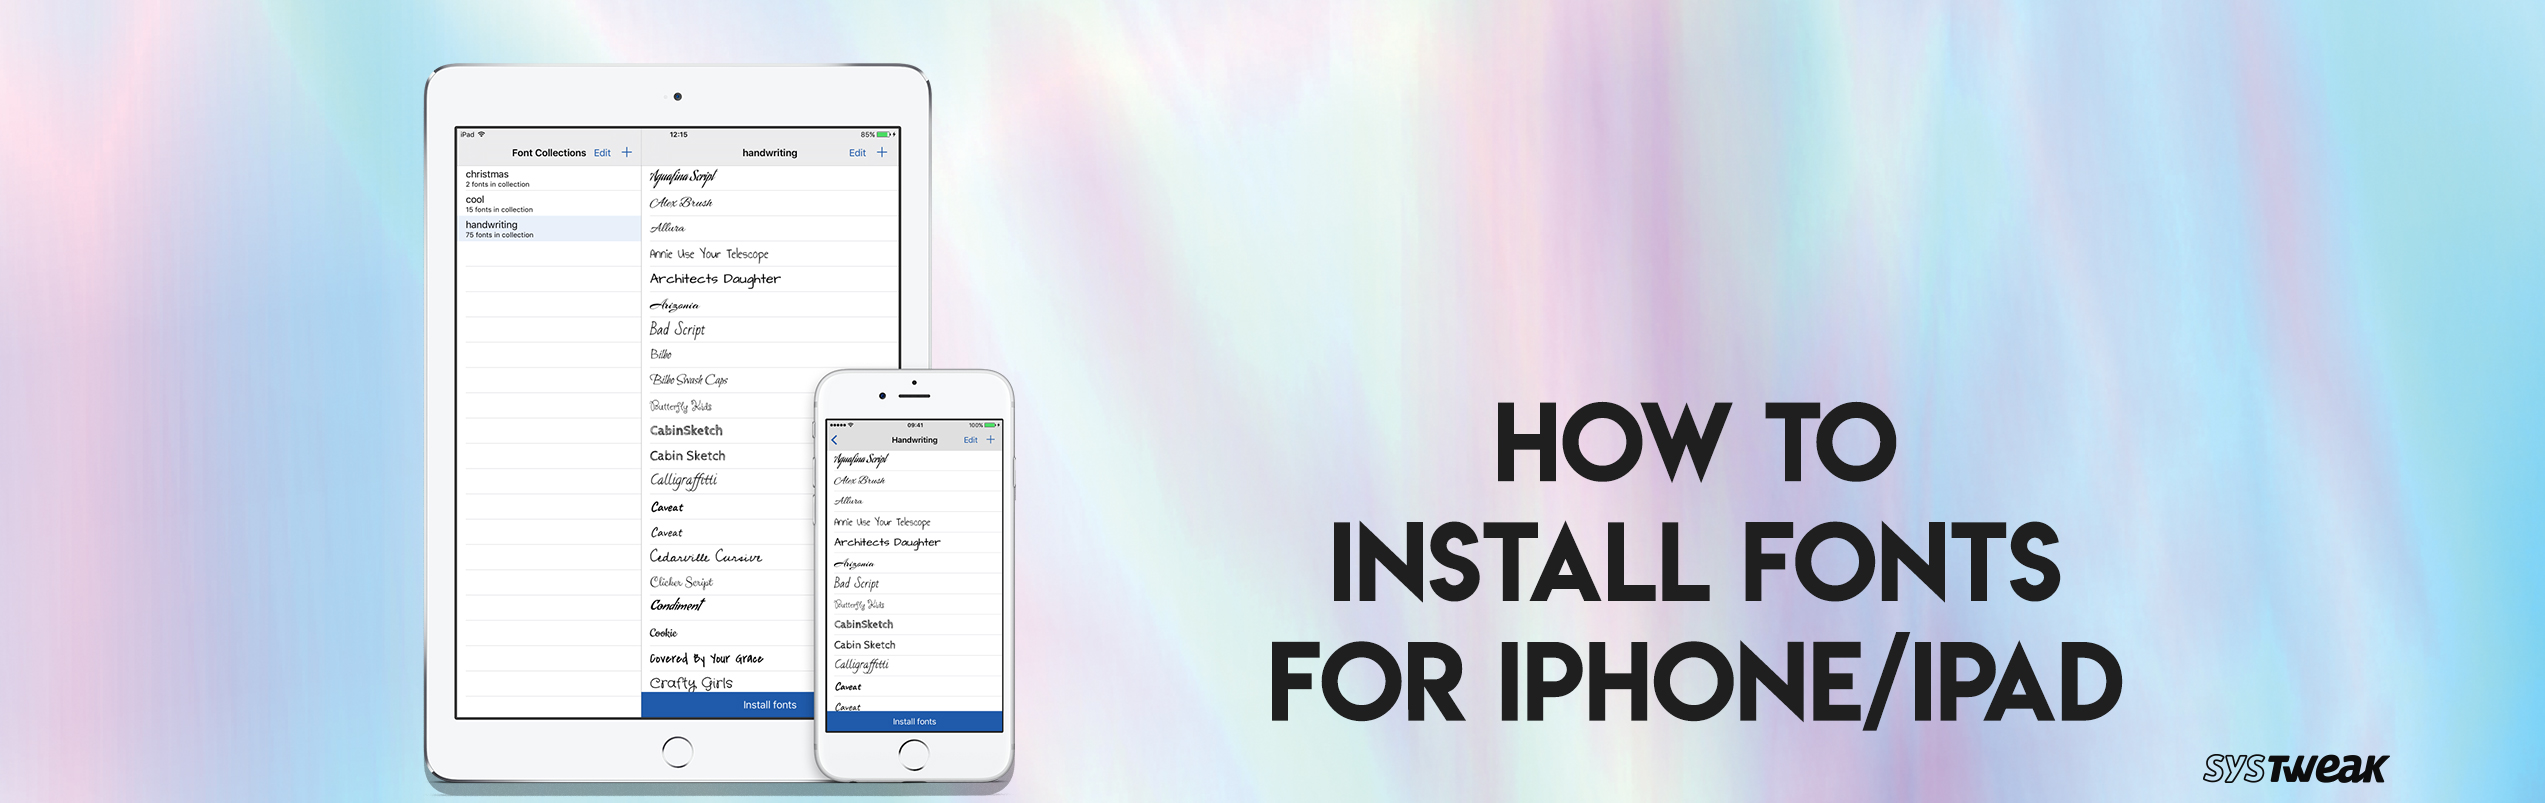 How to Install Fonts on iPhone or iPad?